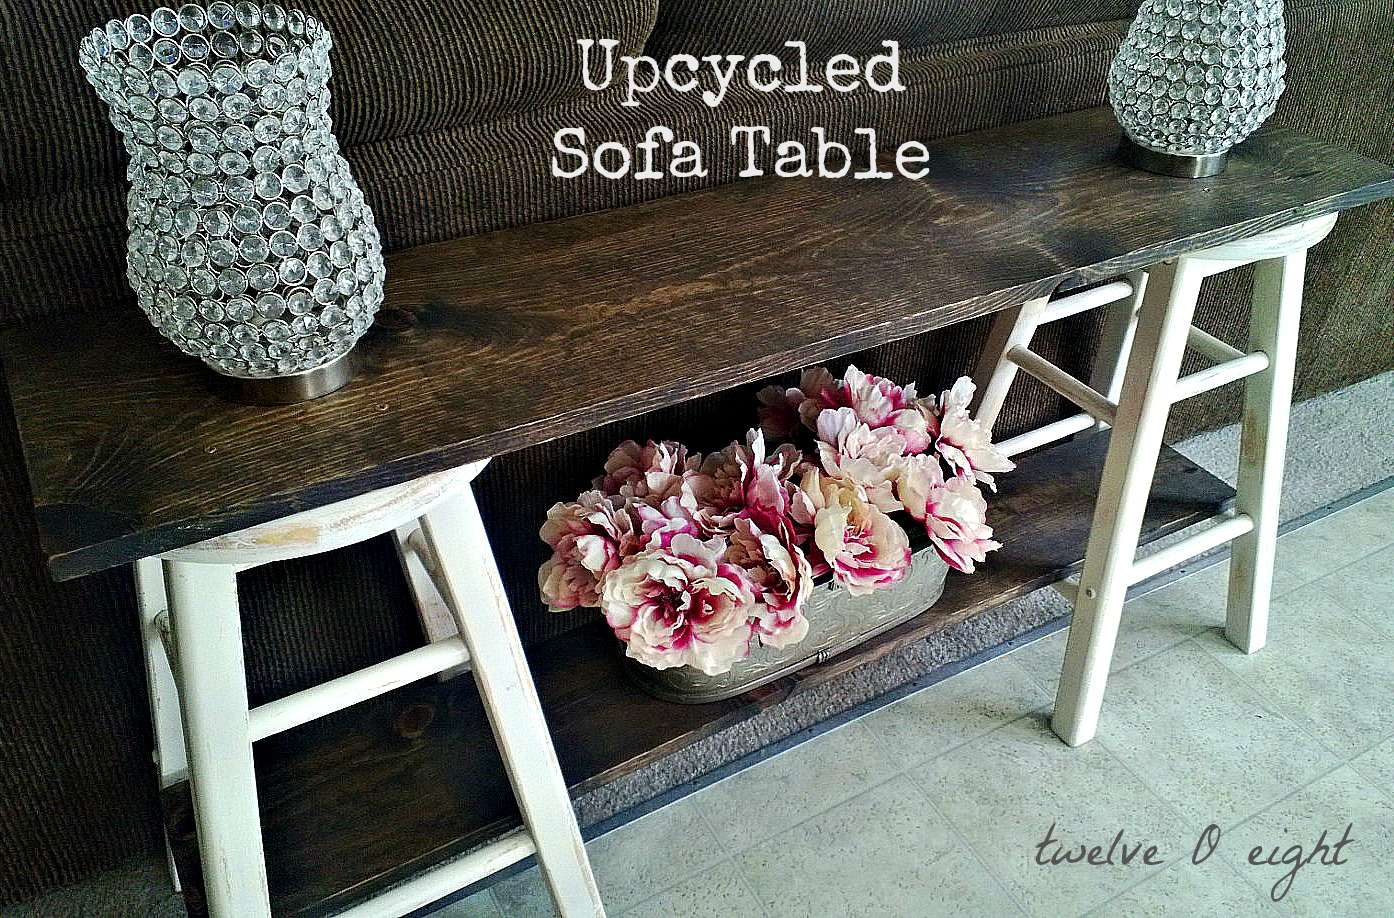 upcycled sofa table. Black Bedroom Furniture Sets. Home Design Ideas